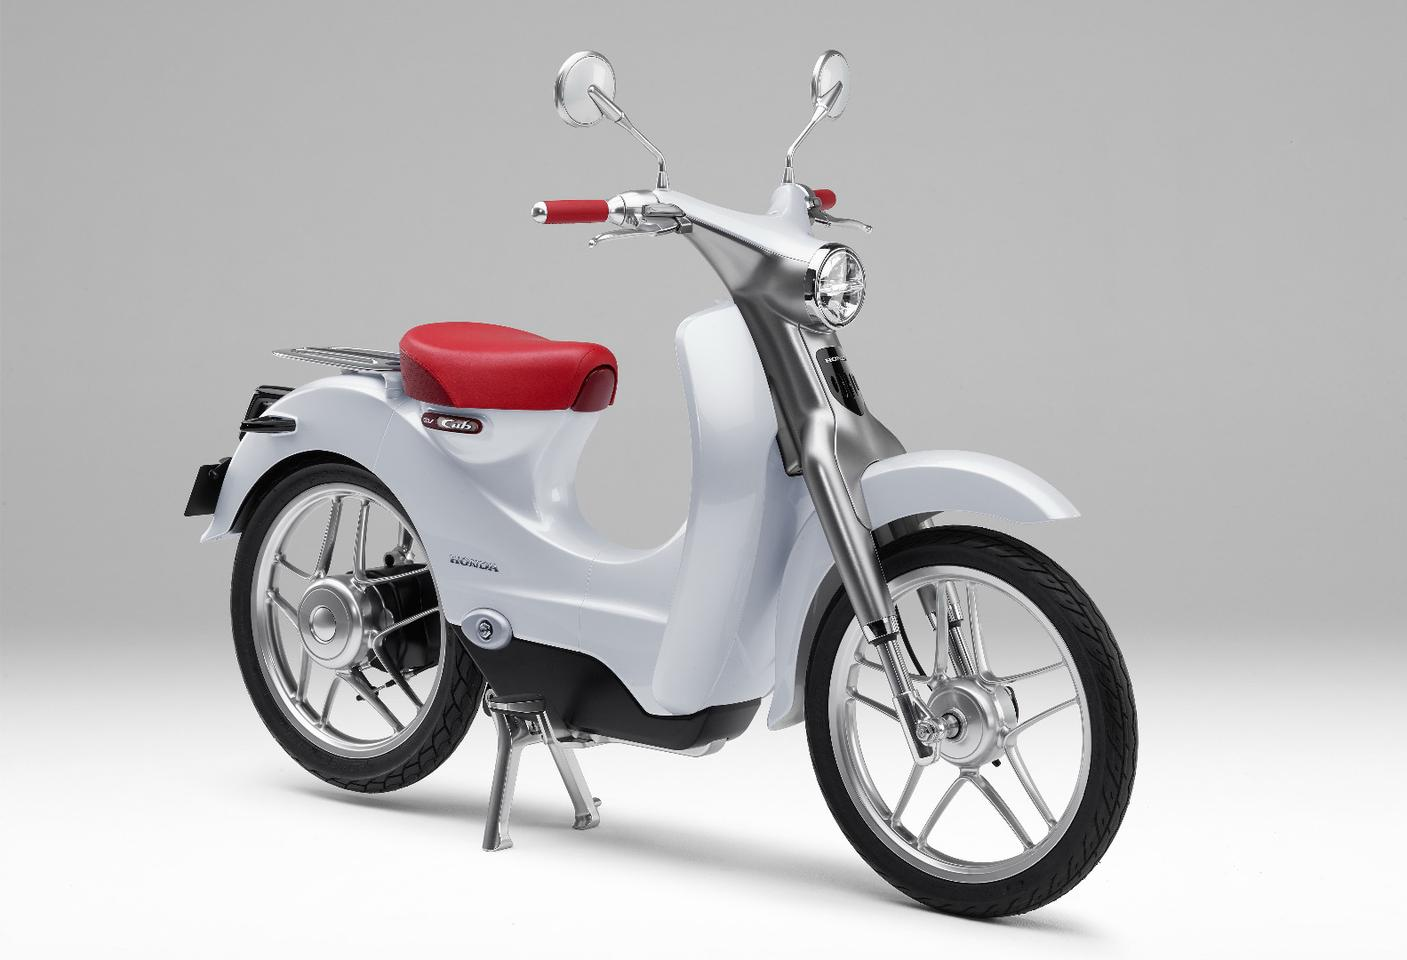 The EV-Cub heralds a new era for Honda's most iconic motorcycle